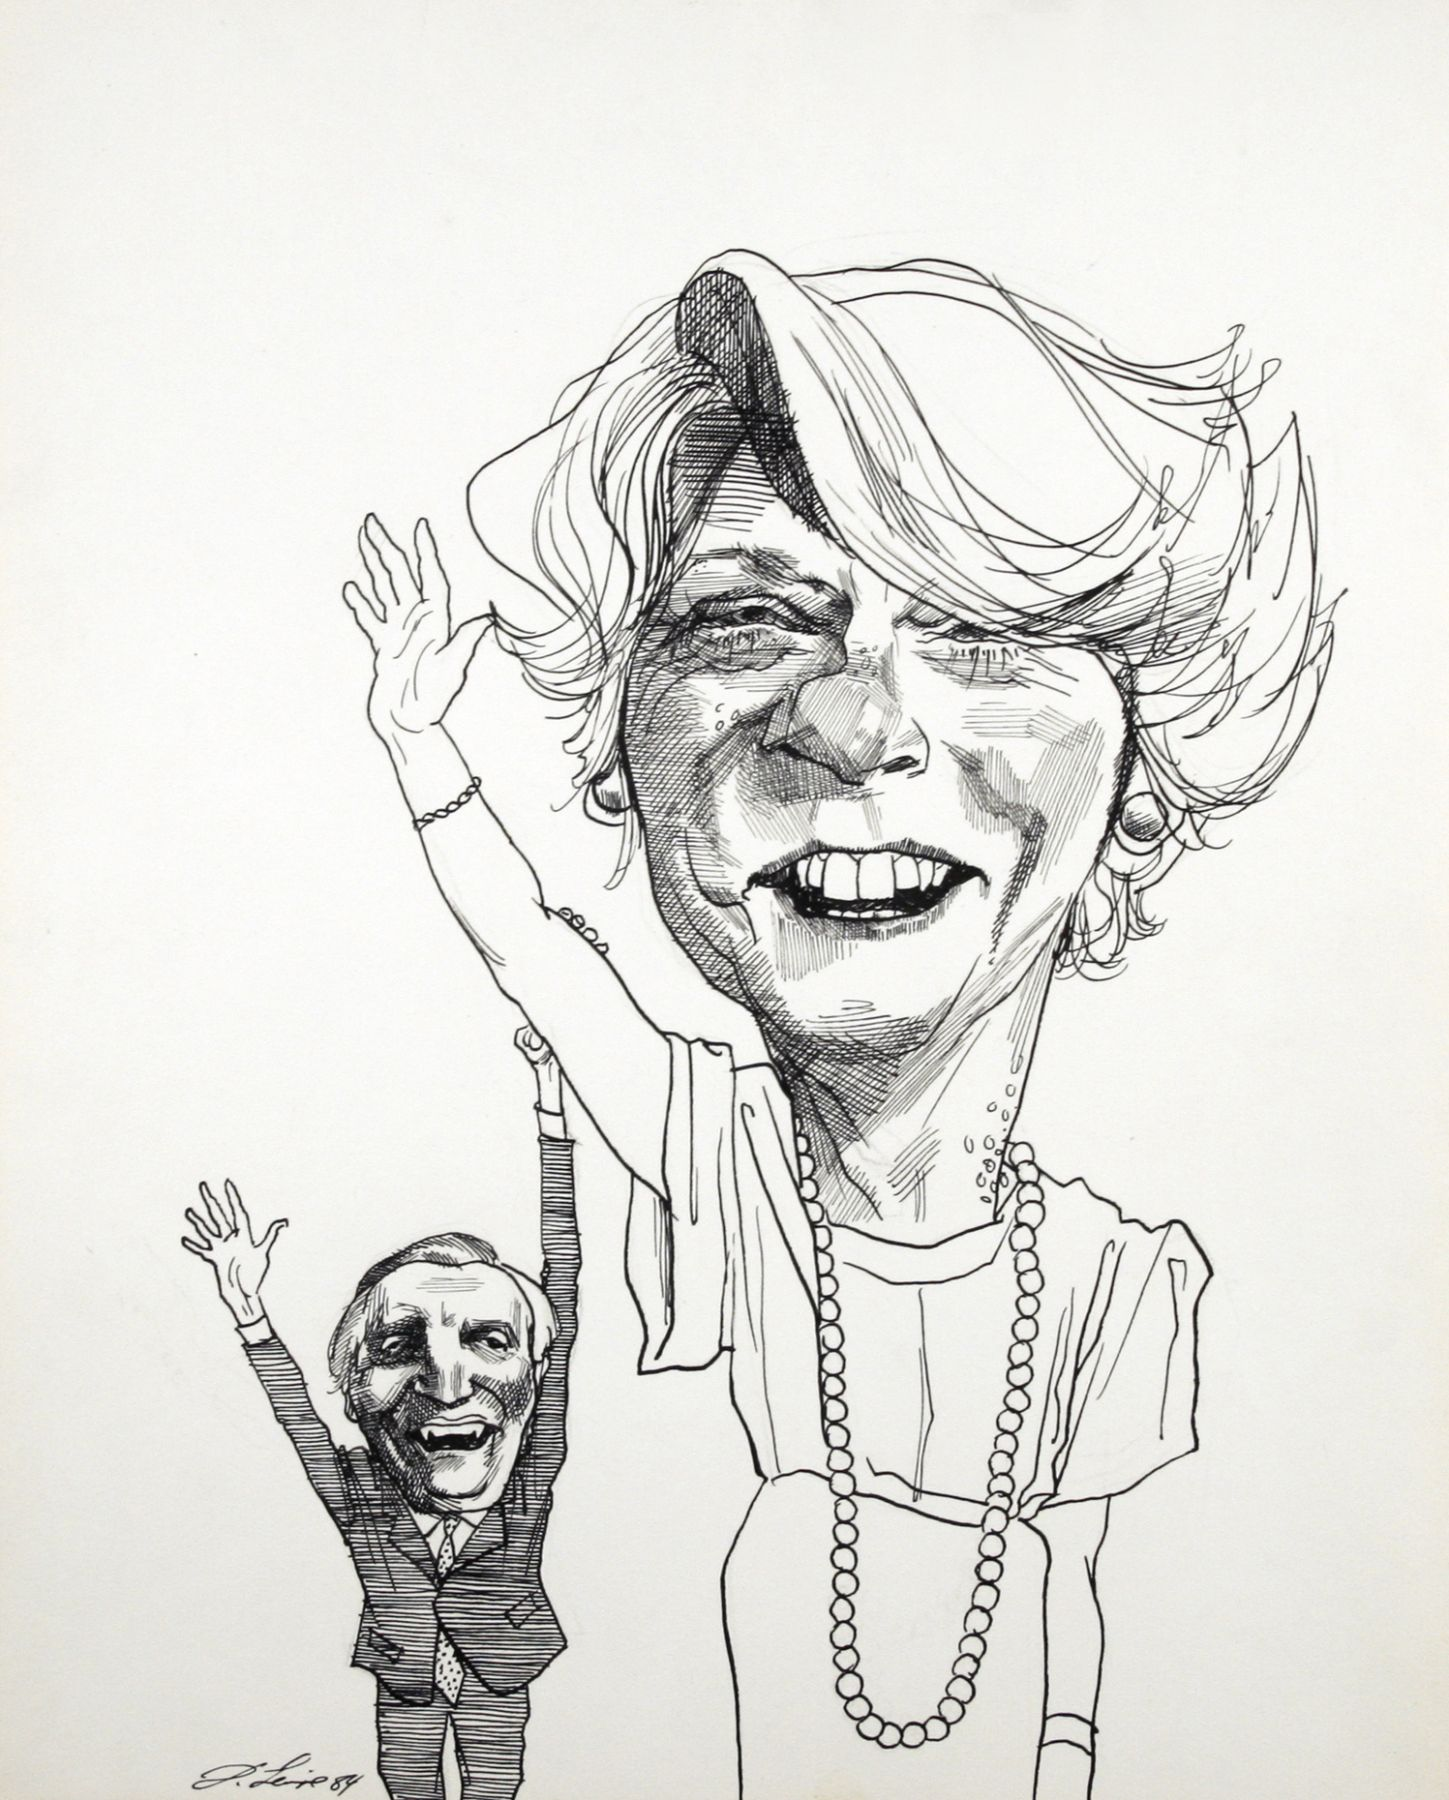 David Levine, Ferraro & Mondale, 1984, ink on paper, 13 1/2 x 11 inches